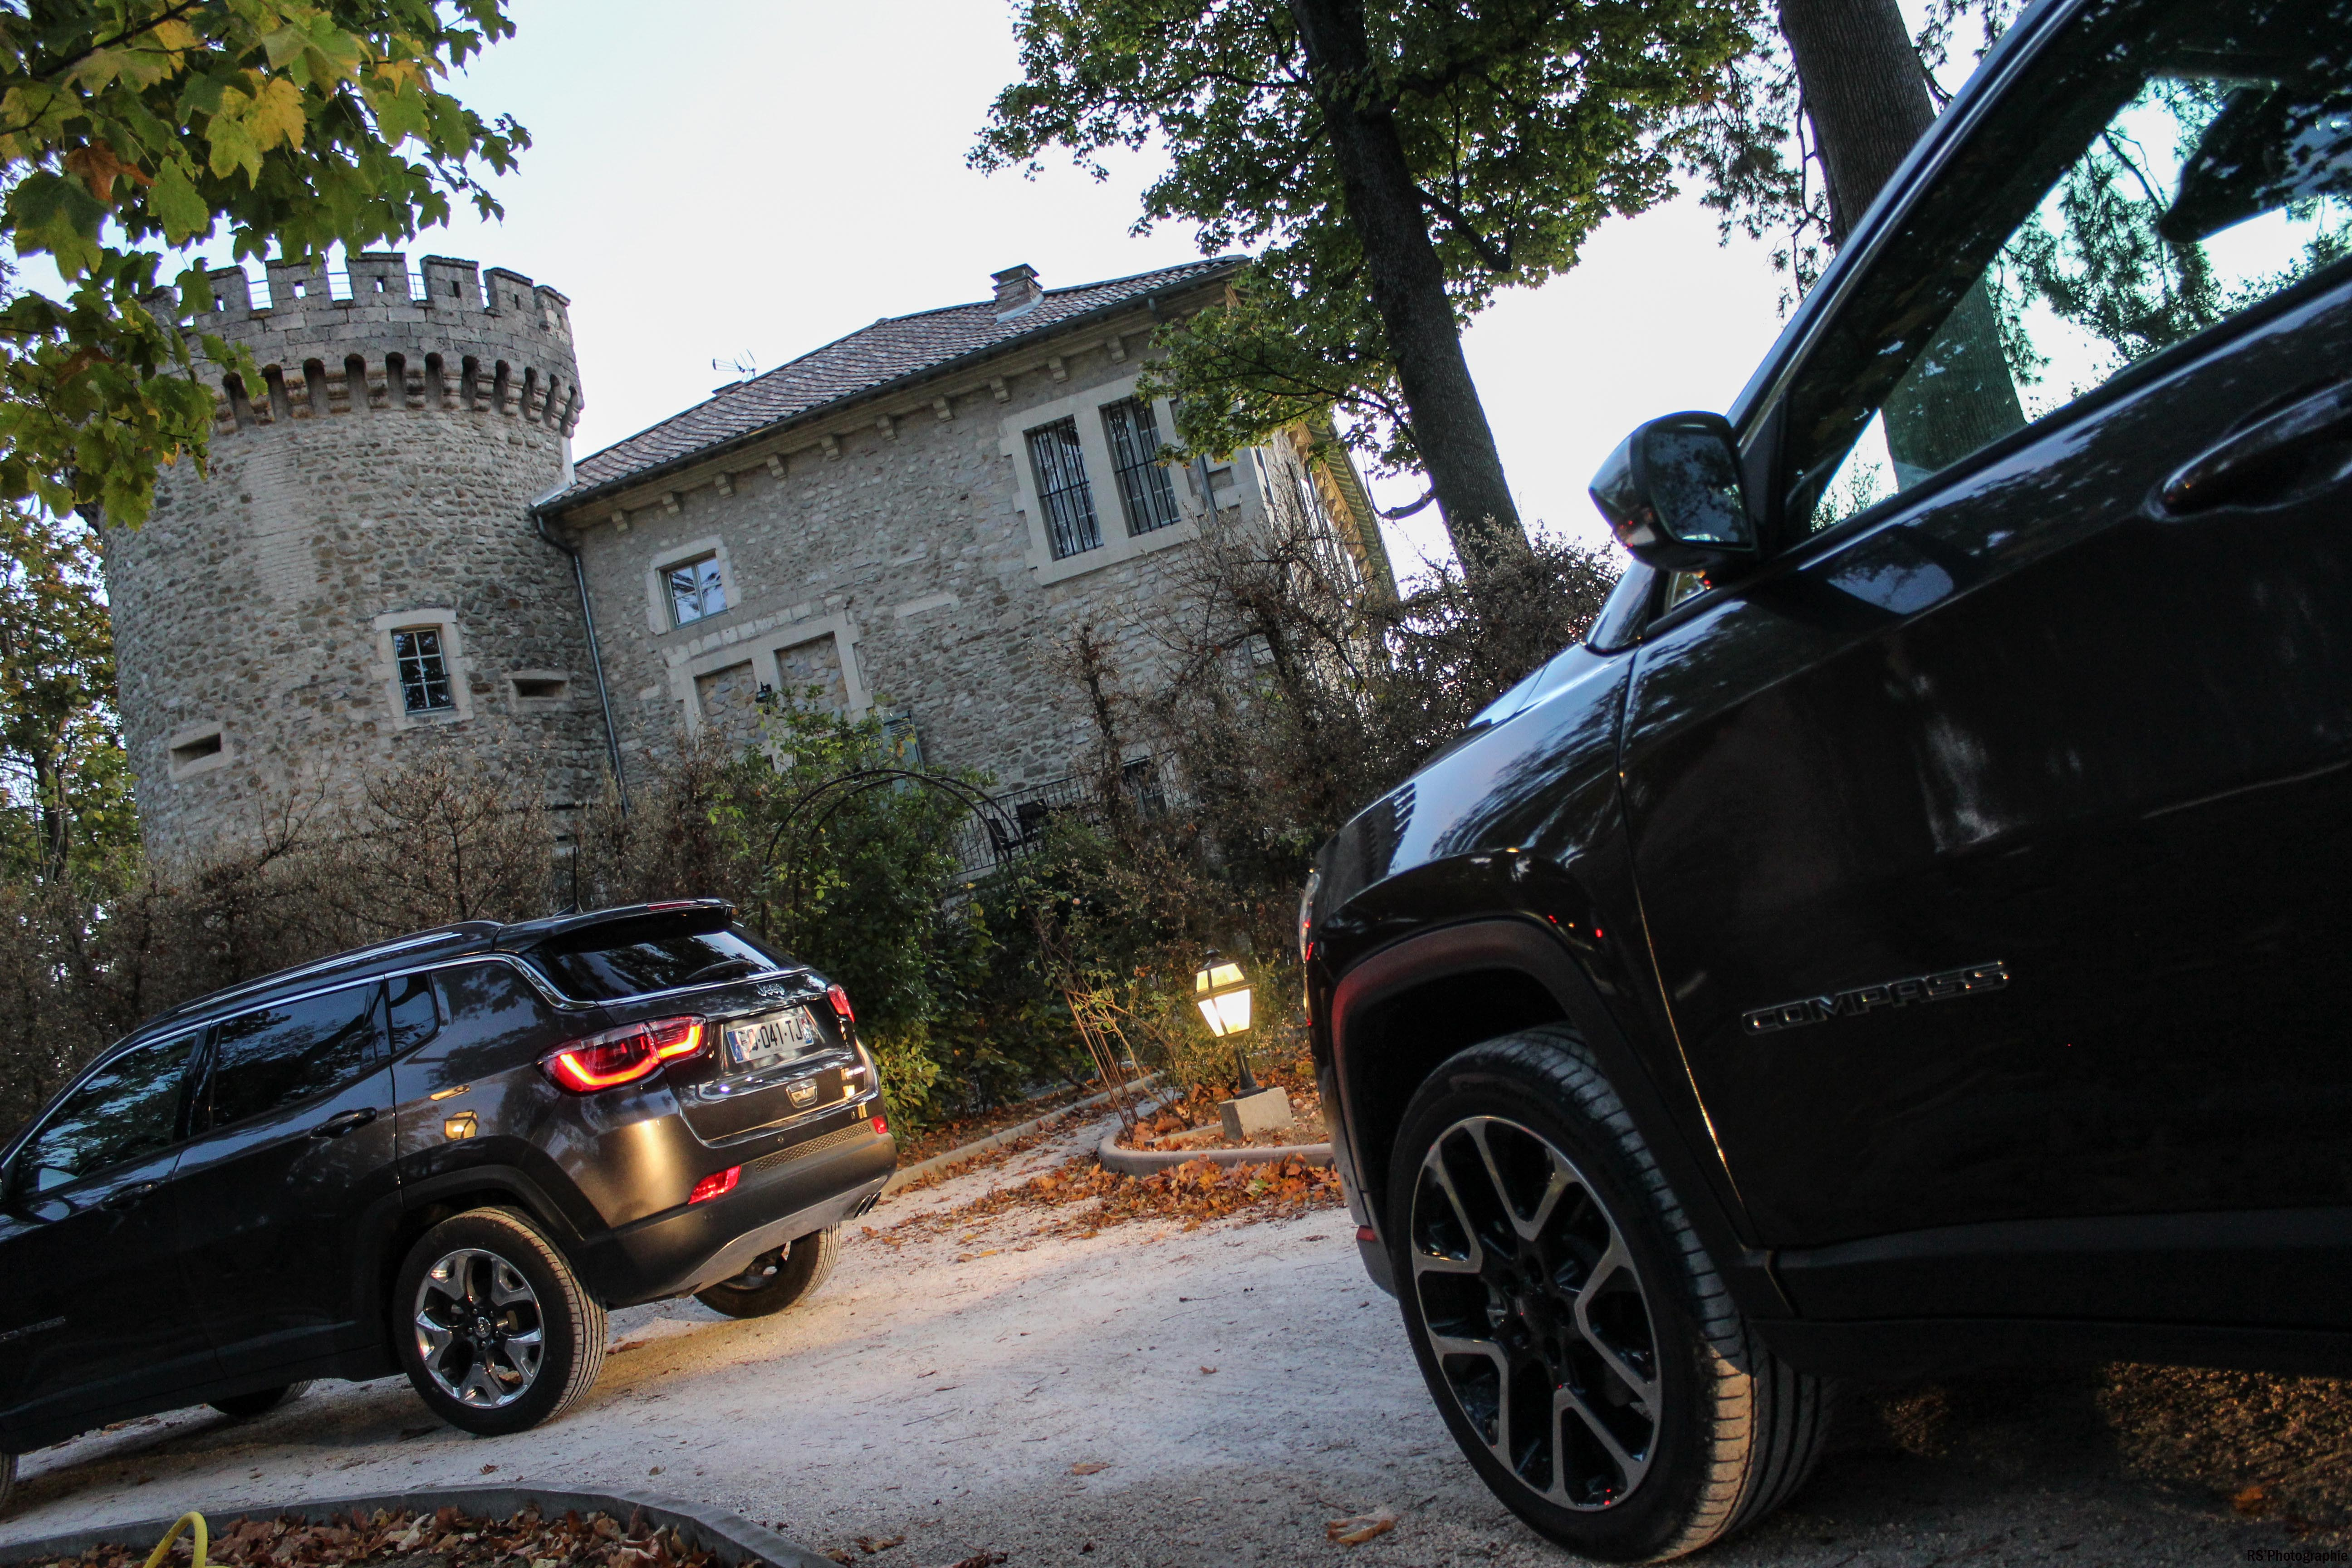 jeepcompass77-jeep-compass-arriere-rear-Arnaud Demasier-RSPhotographie